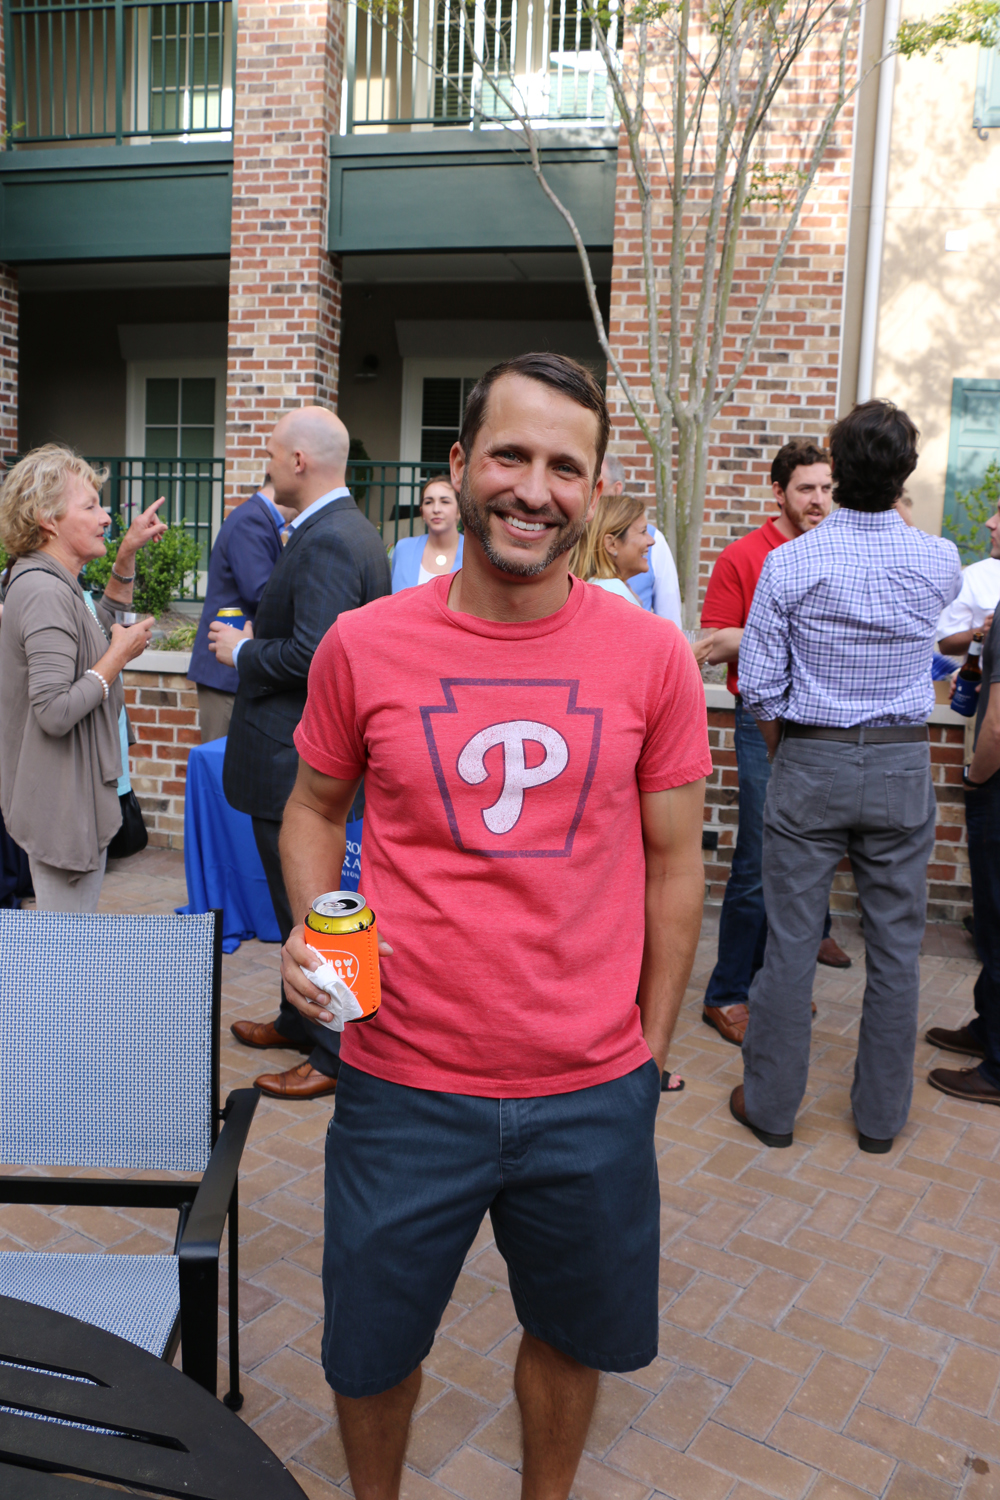 Ian Auman showed support for his team on MLB's opening day, which coincided with the block party.